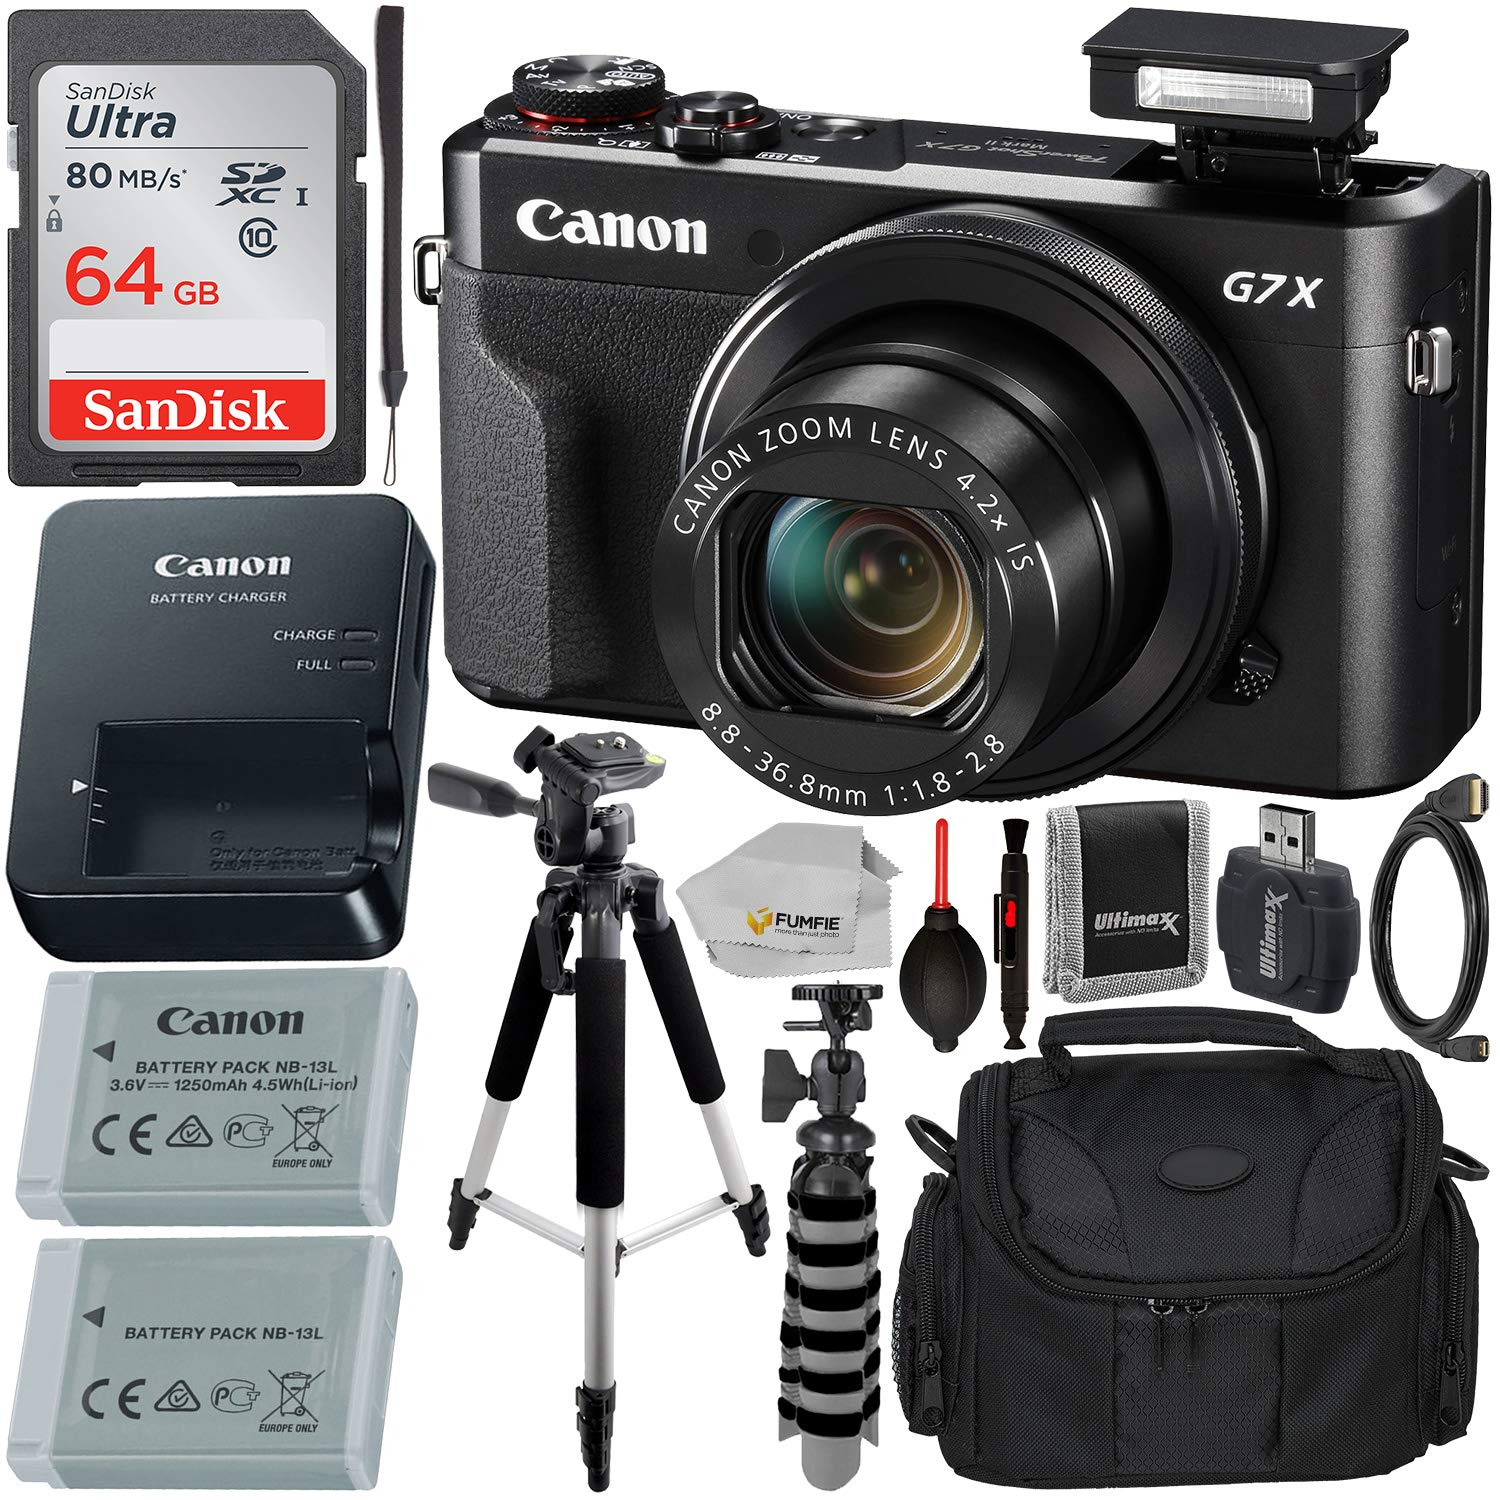 Canon PowerShot G7 X Mark II Digital Camera (Black) with Essential Accessory Bundle - Includes: SanDisk Ultra 64GB SDXC Memory Card, 1x Replacement Battery, 57'' Tripod, Carrying Case & More by Fumfie